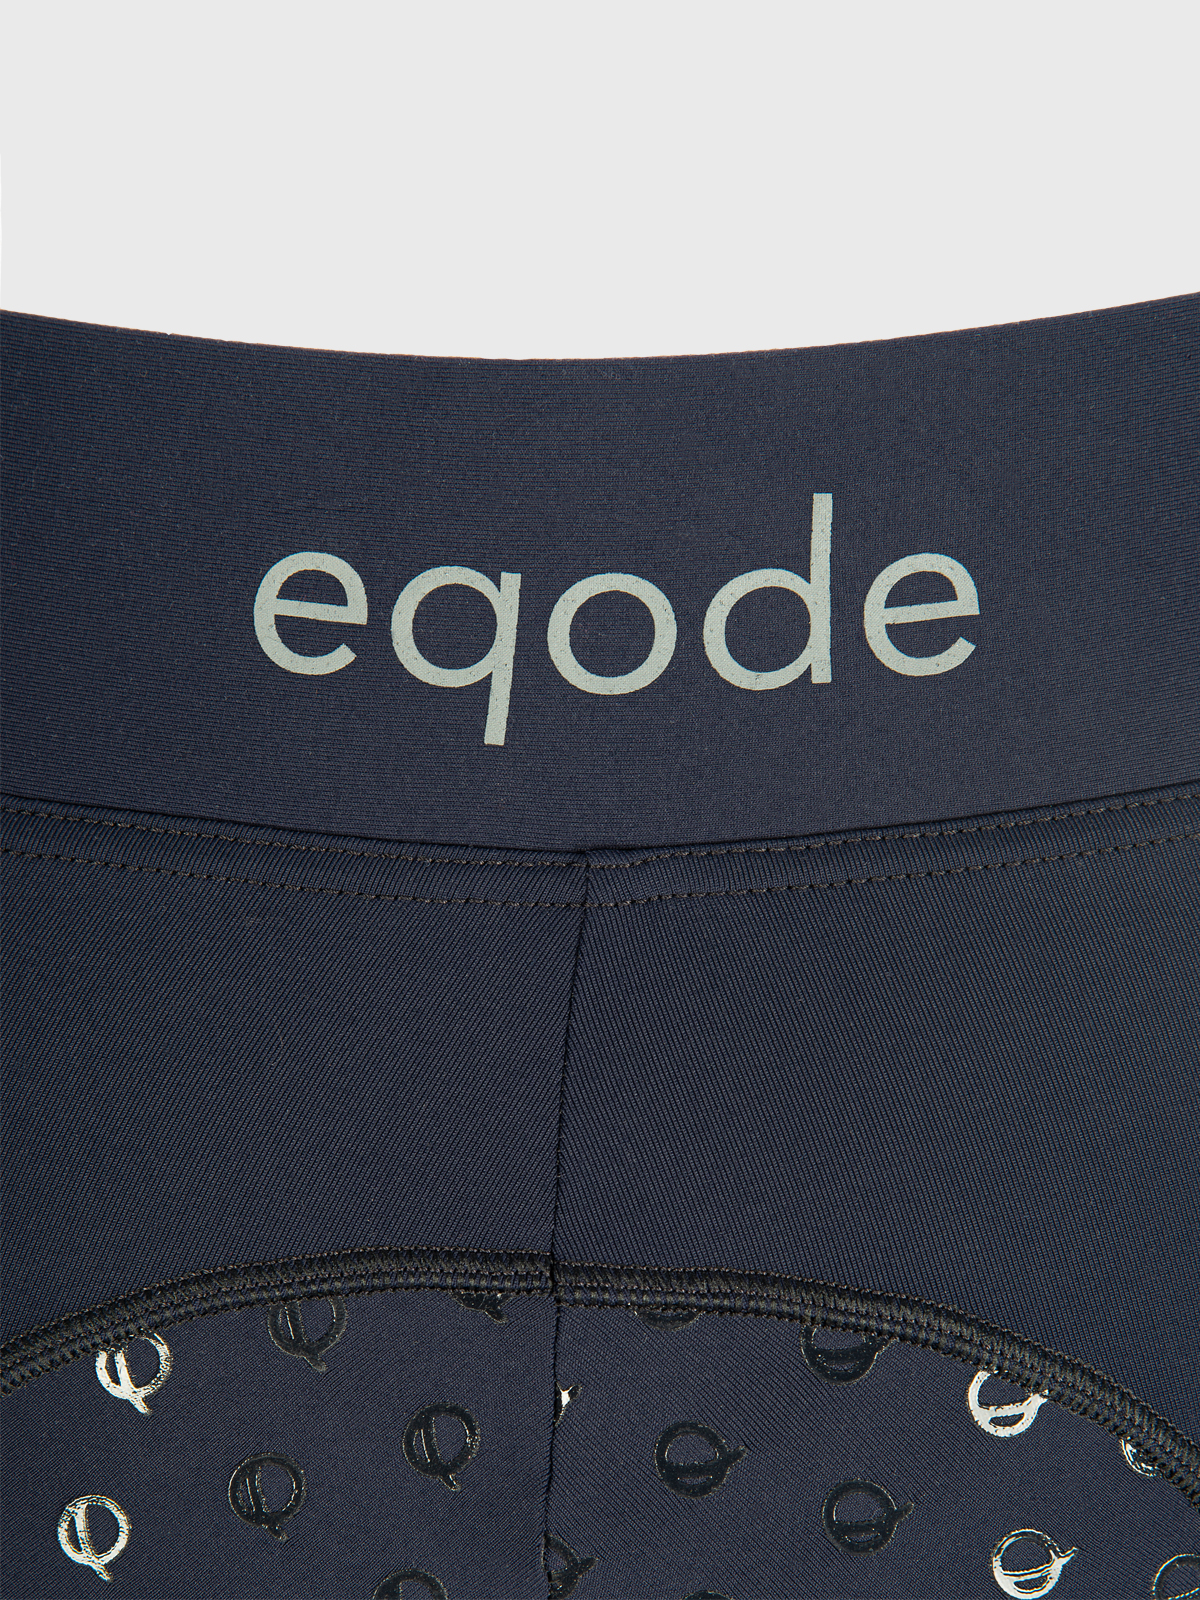 EQODE WOMEN'S RIDING LEGGINGS WITH FULL SEAT 3